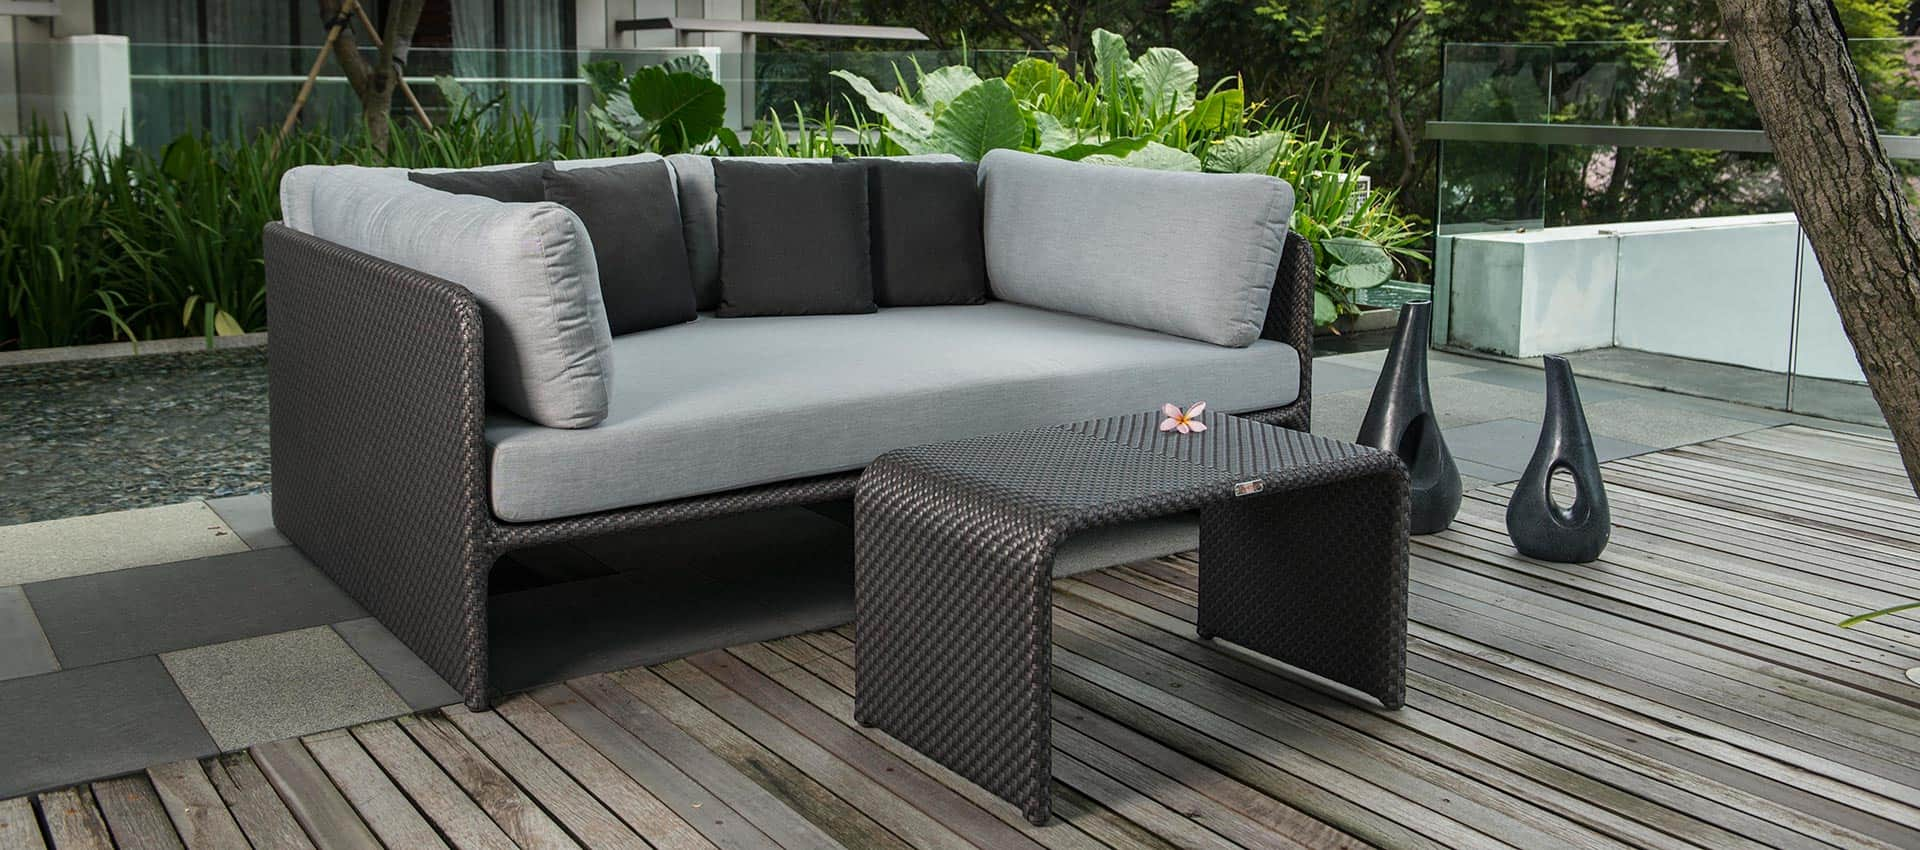 outdoor furniture horizon collection